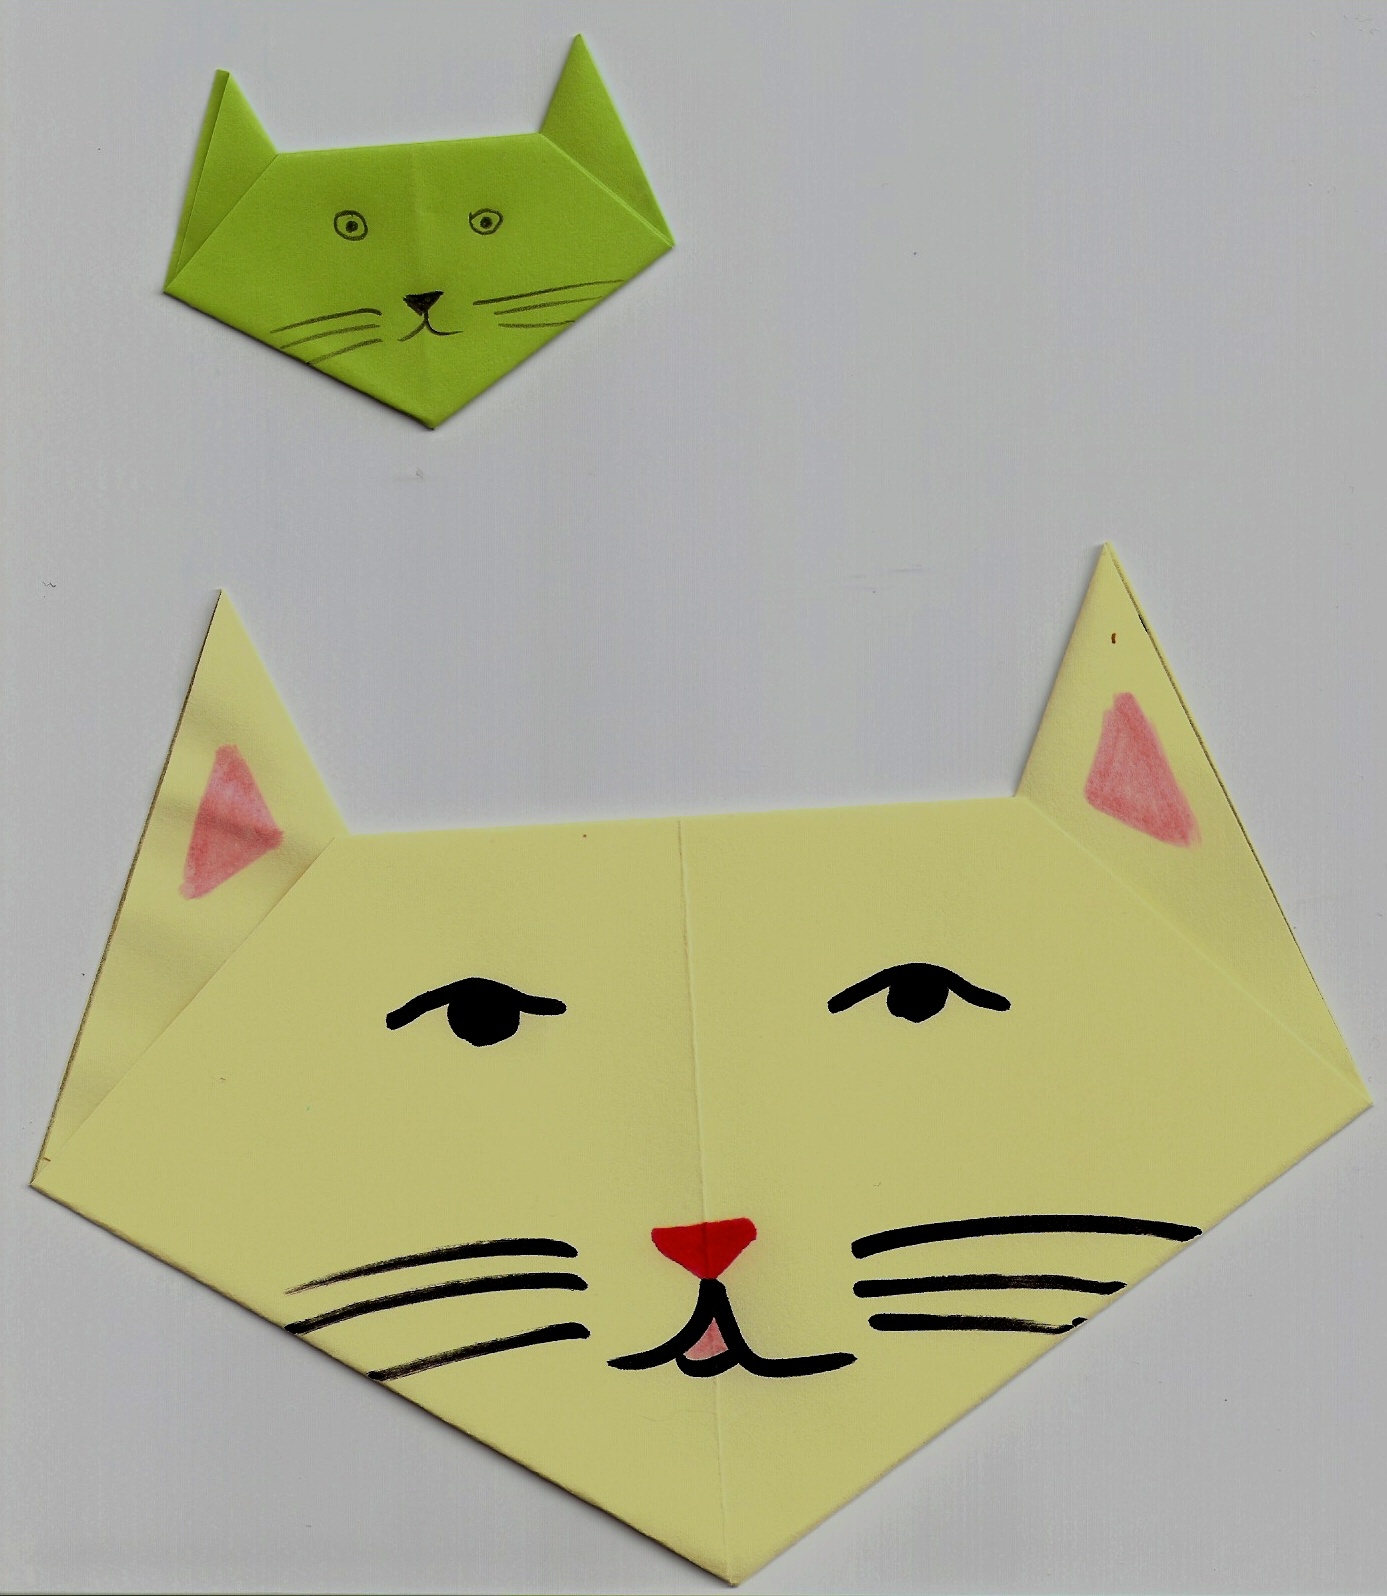 Arts visuels c3 page 2 locazil - Origami chat facile ...